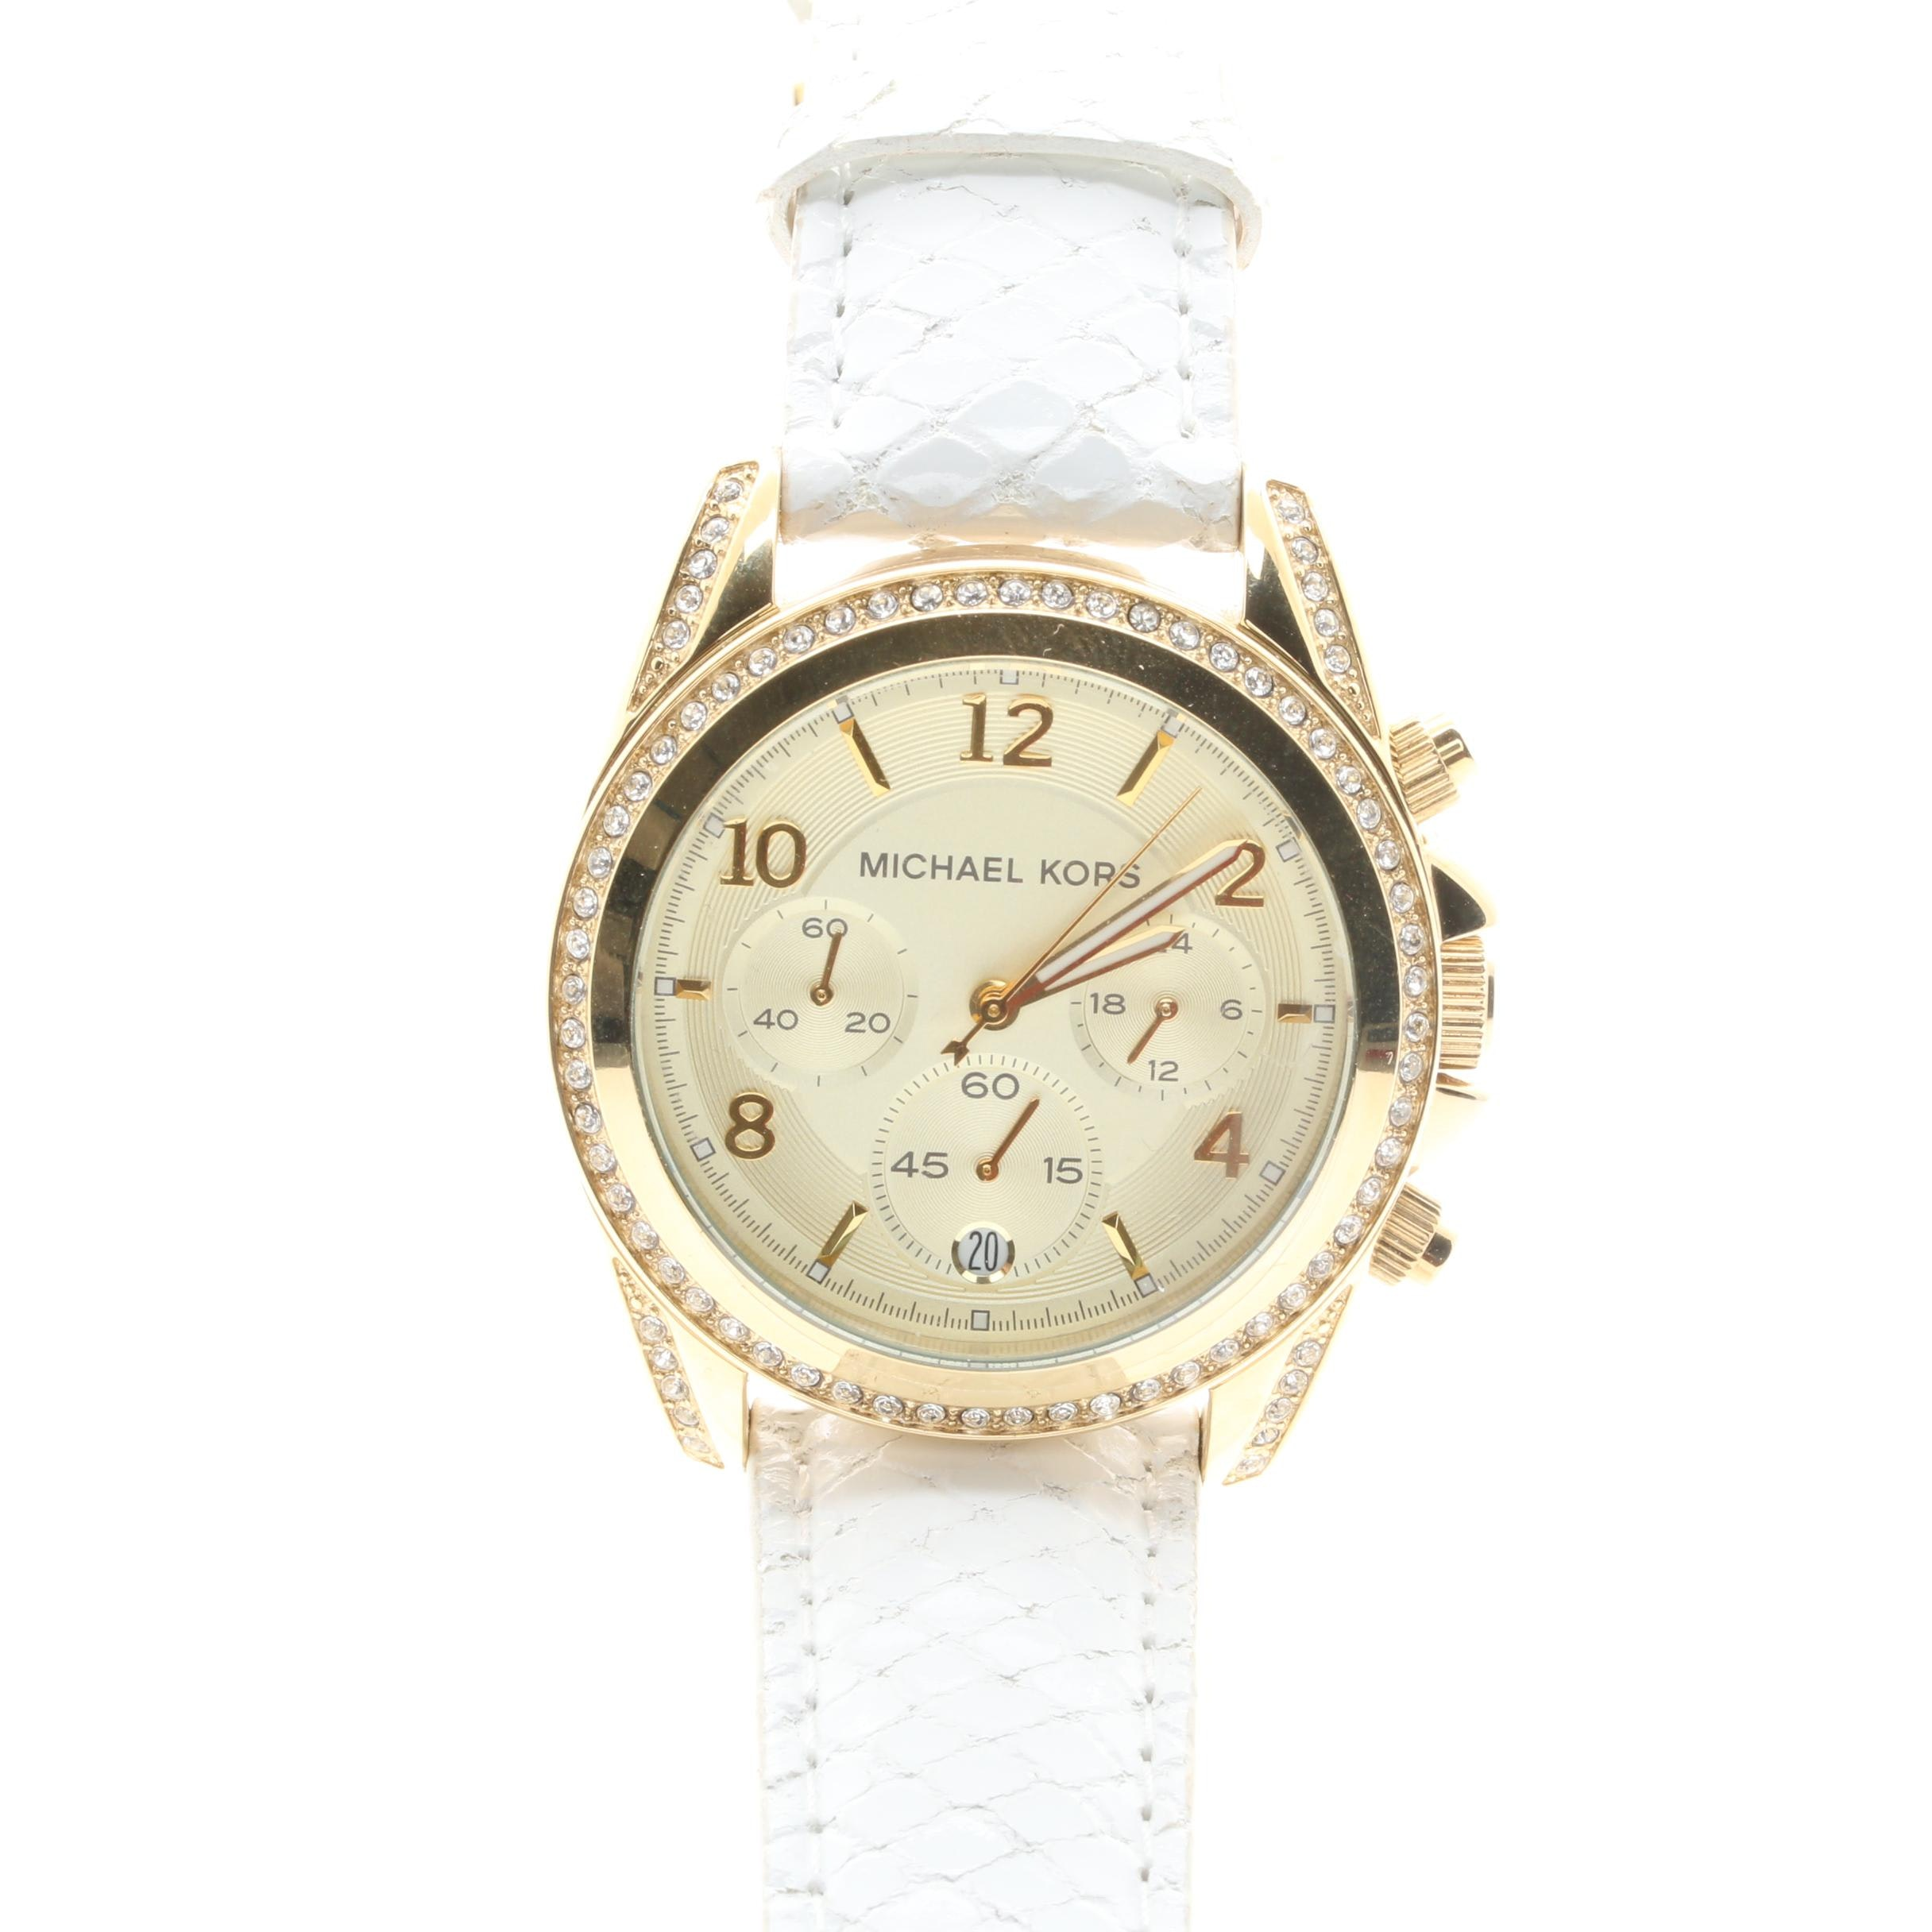 Michael Kors Gold Tone and Crystal Accented Wristwatch